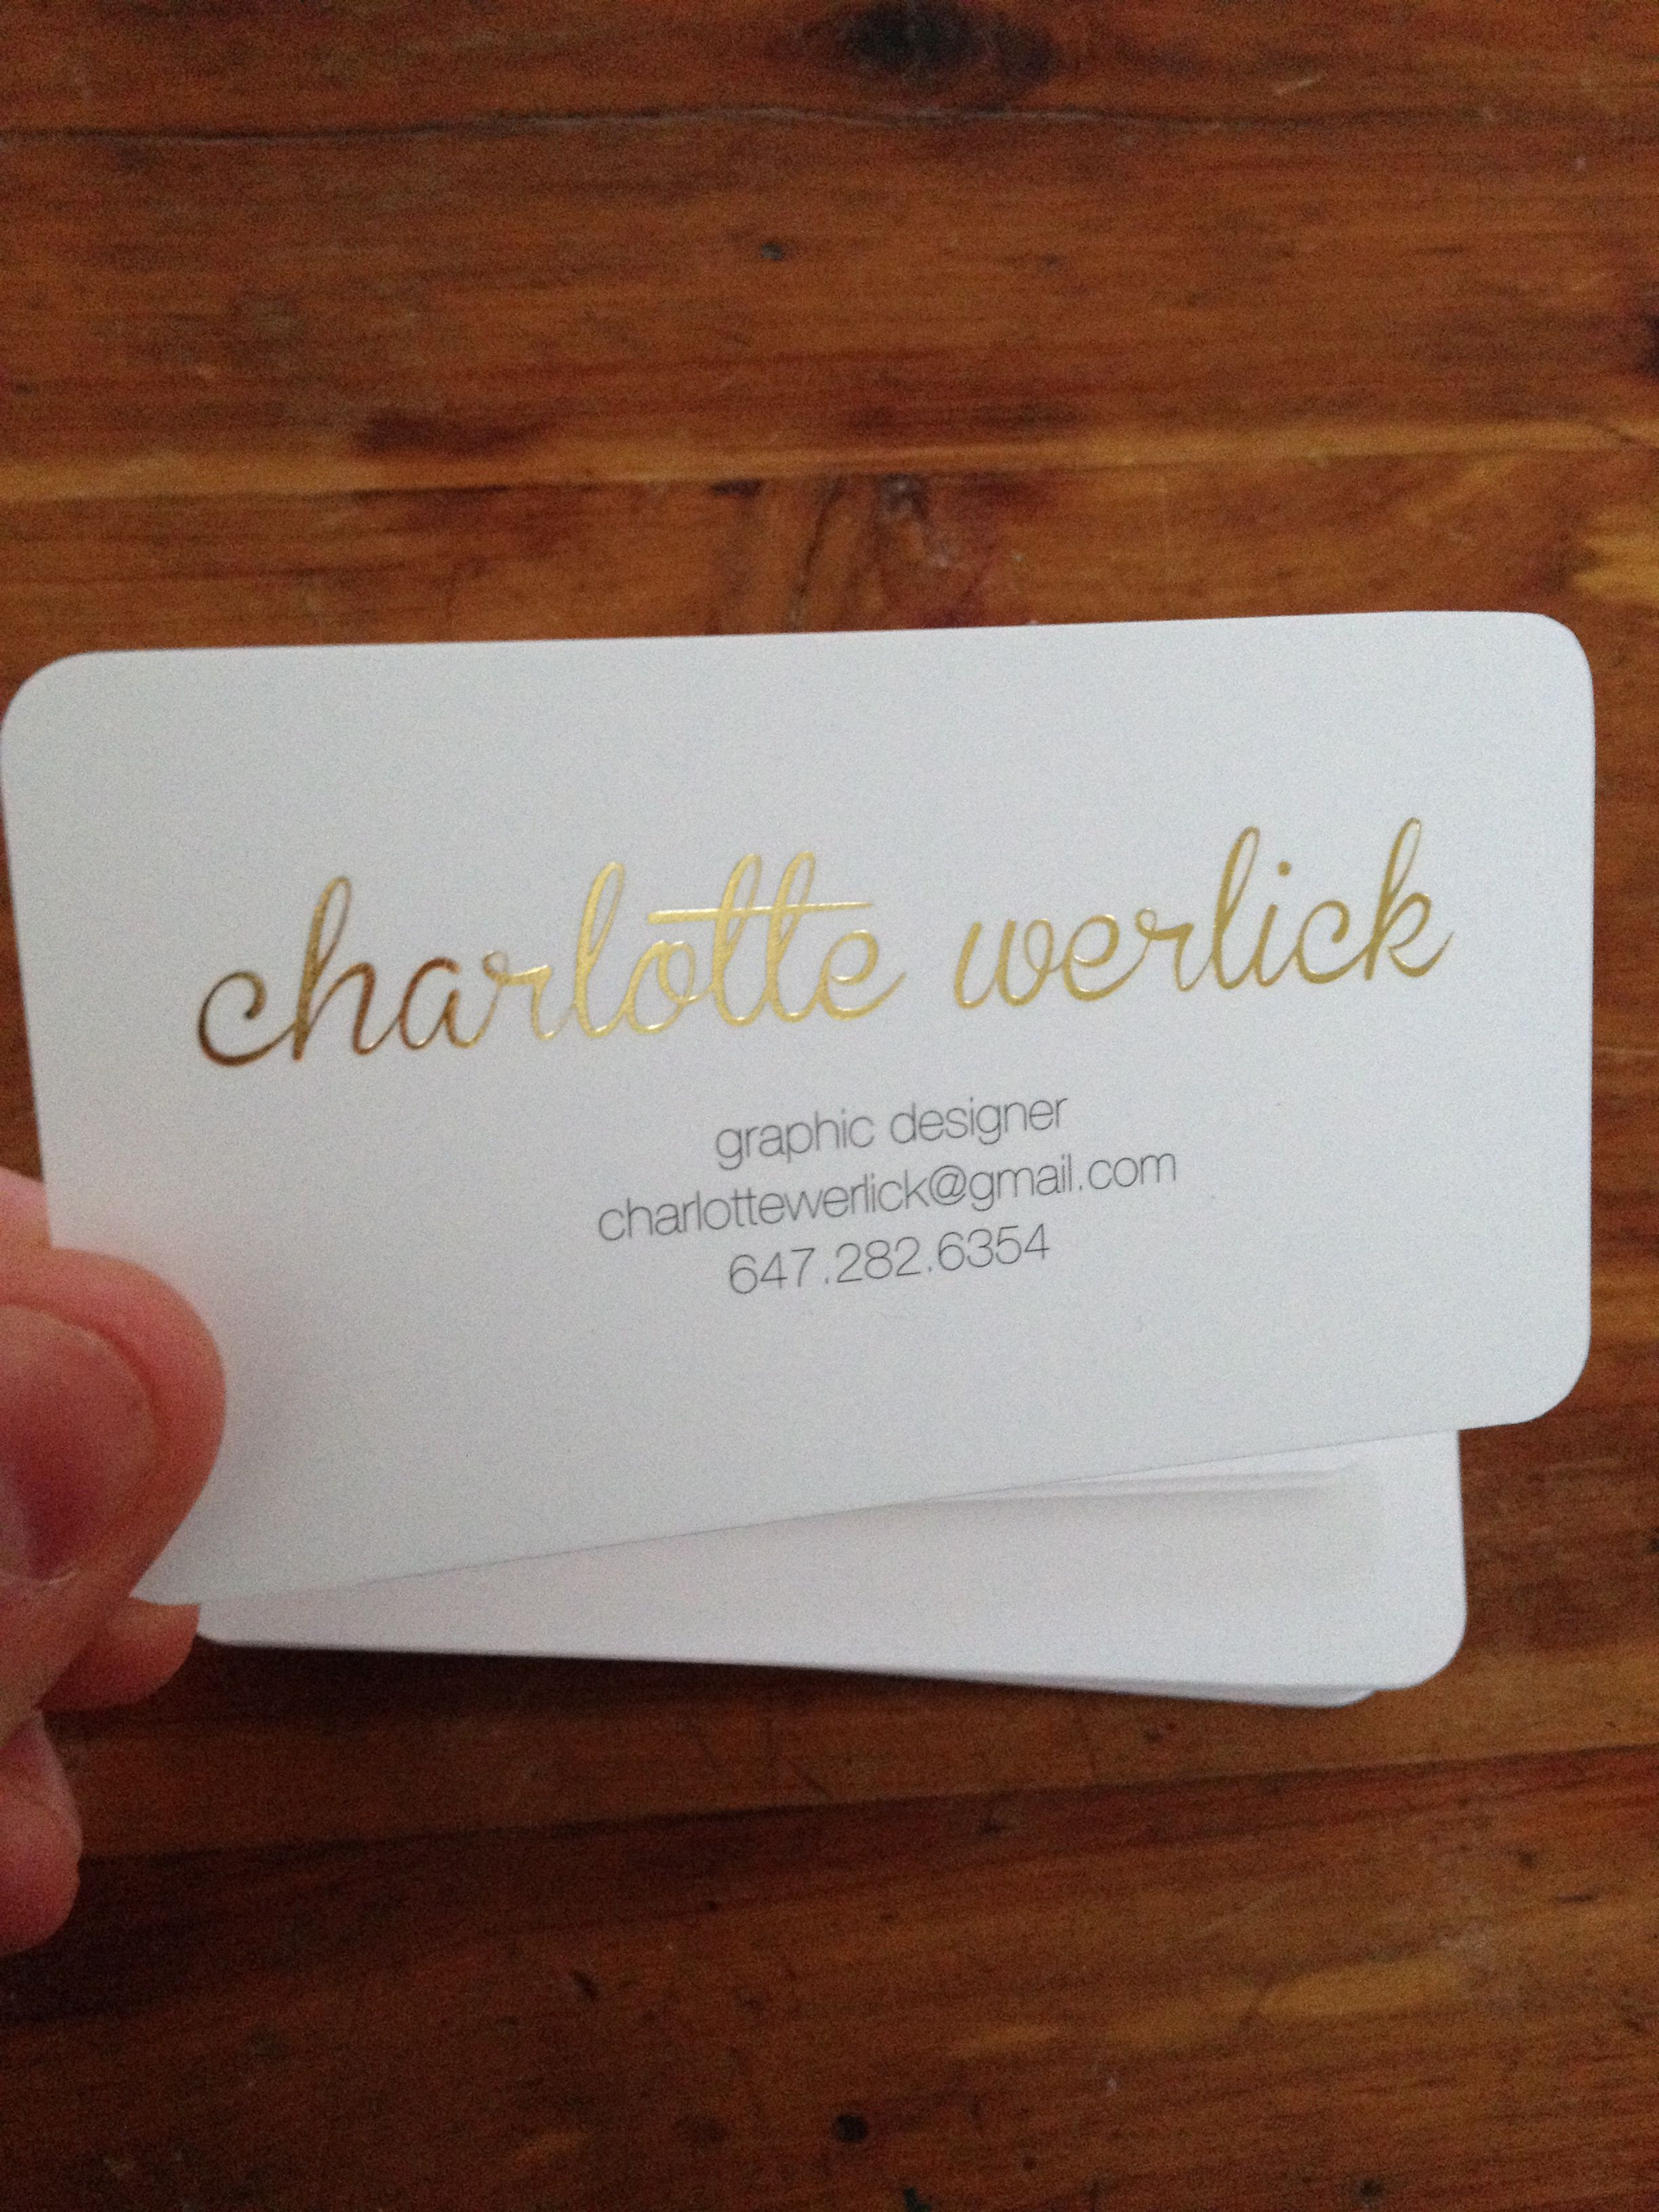 Simple idea of spot uv business cards created by printing the simple idea of spot uv business cards created by printing the entire card in pms 877 metallic silver and then using a clover step and repeat backg magicingreecefo Choice Image